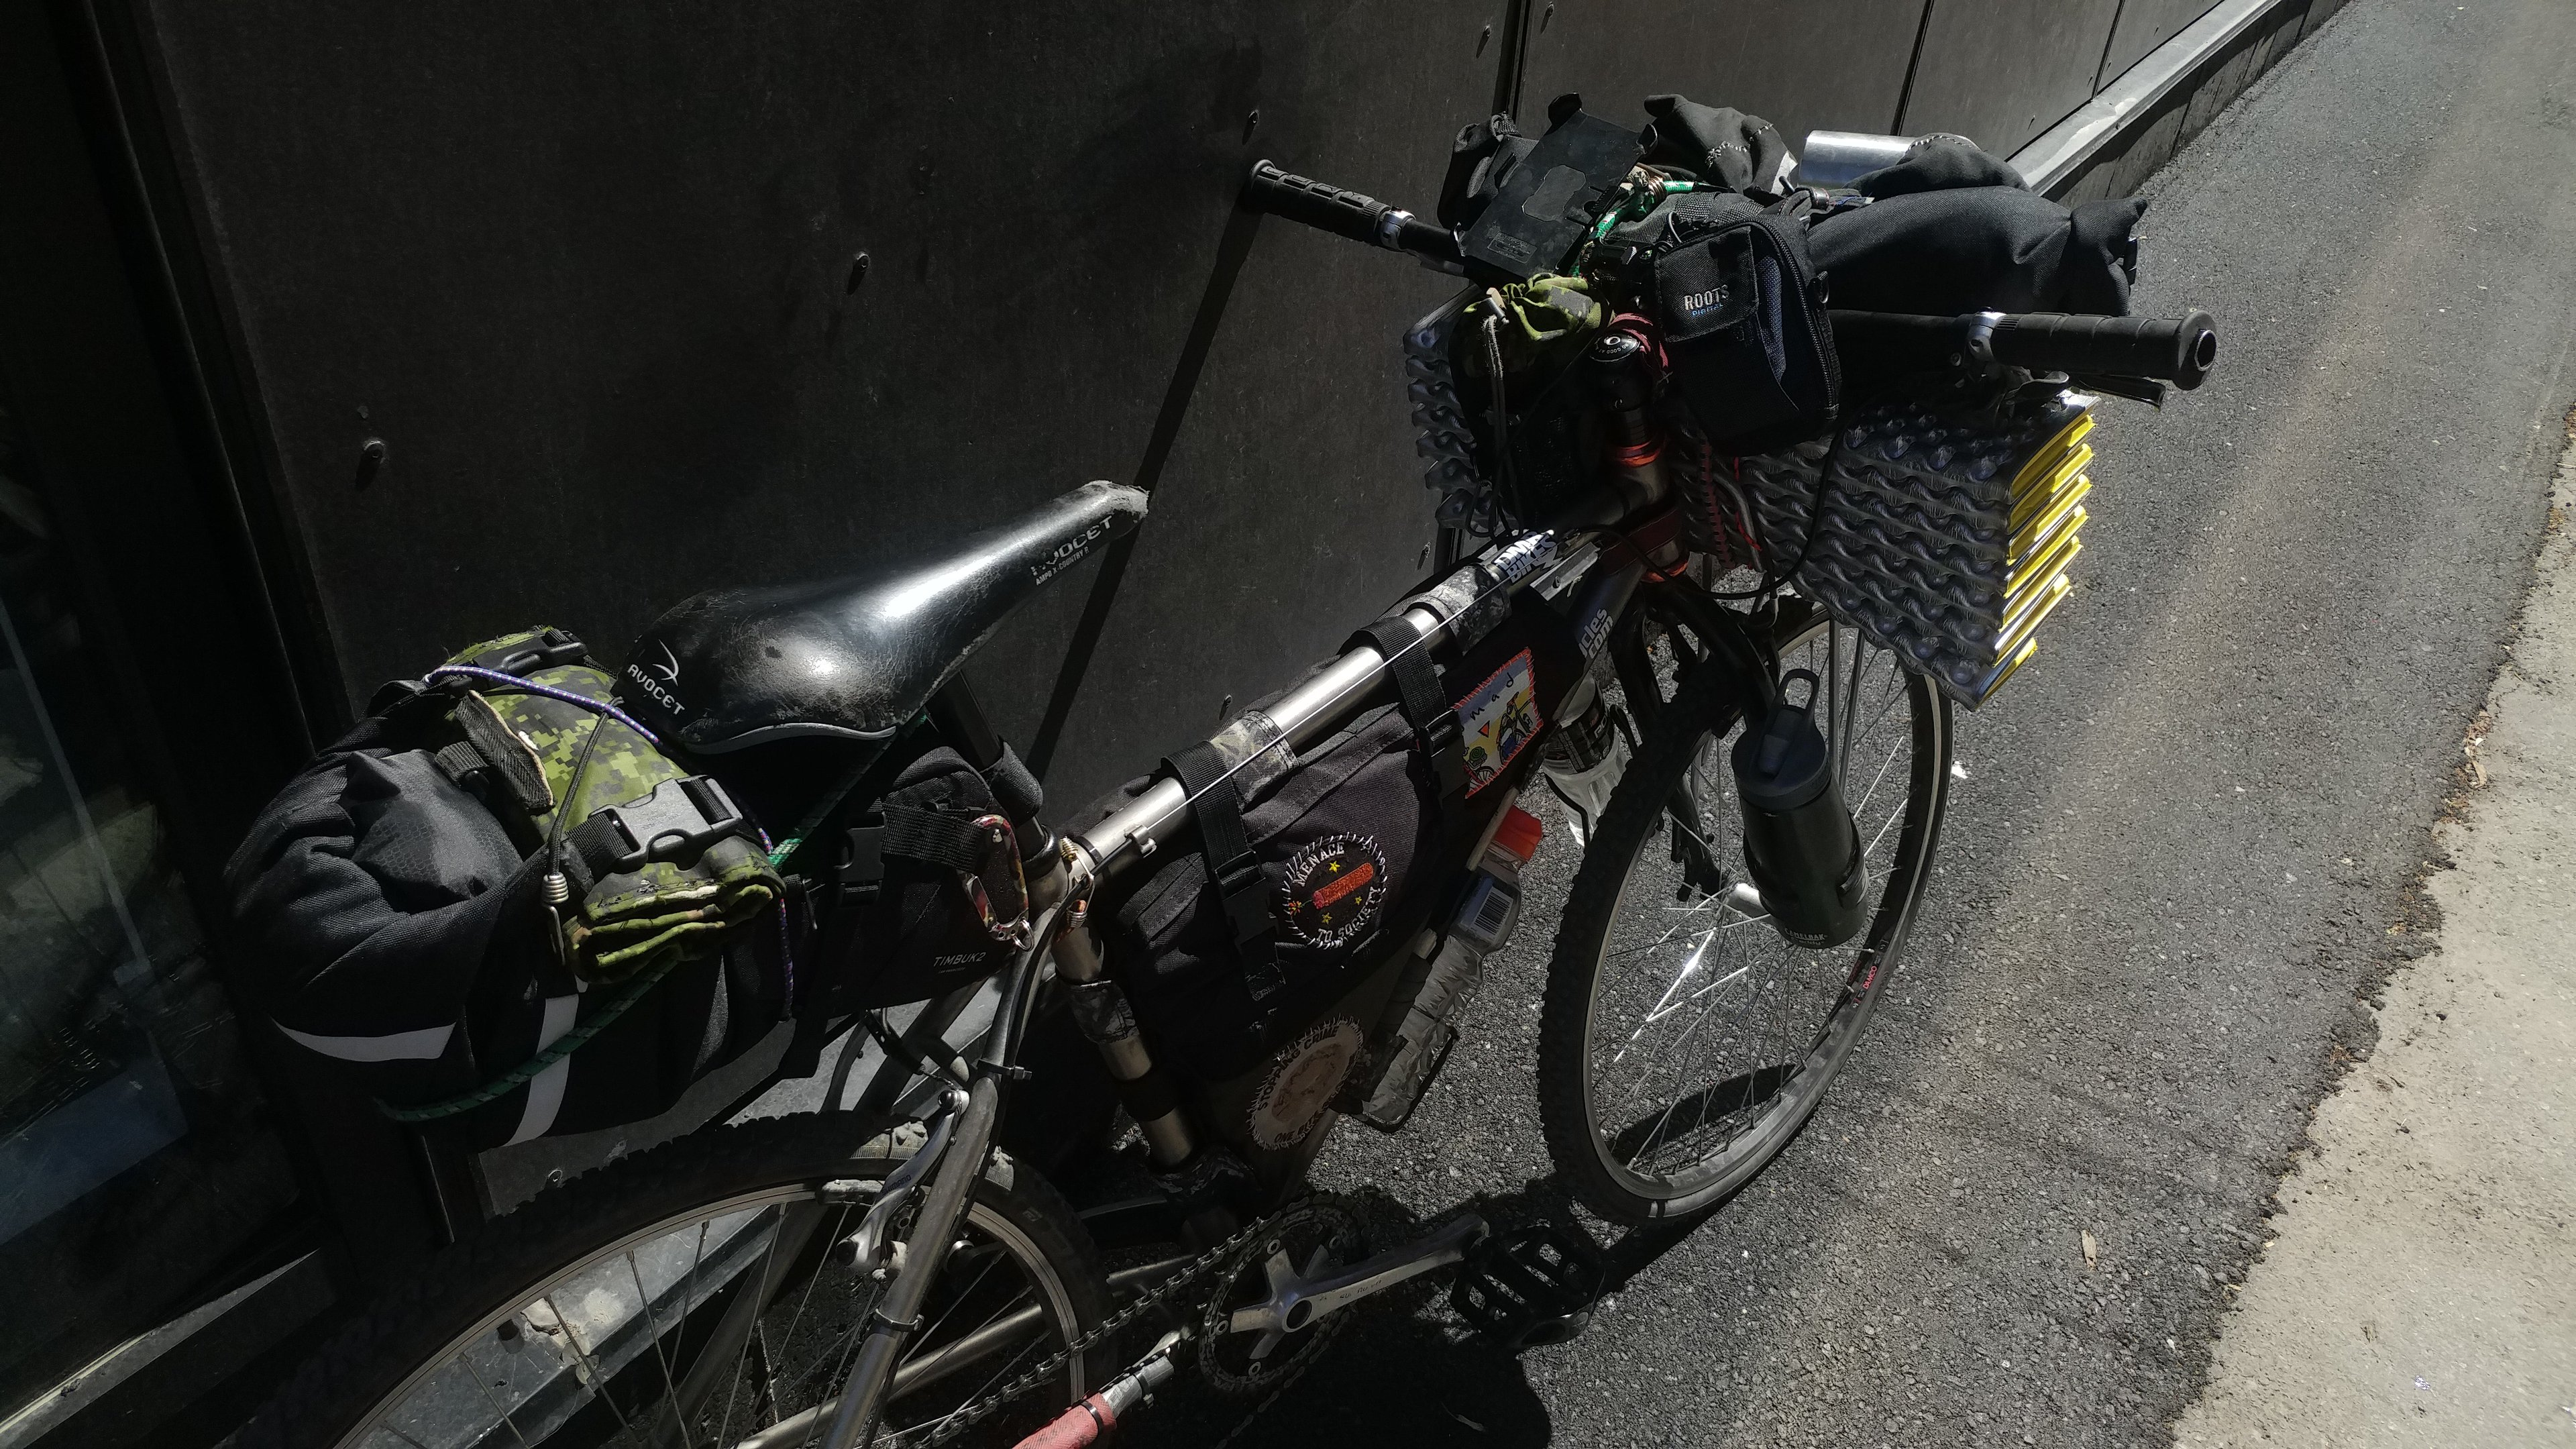 img_20180512_142614-jpg.43081_Picture of your loaded bicycle_Bike Touring_Squat the Planet_12:59 PM